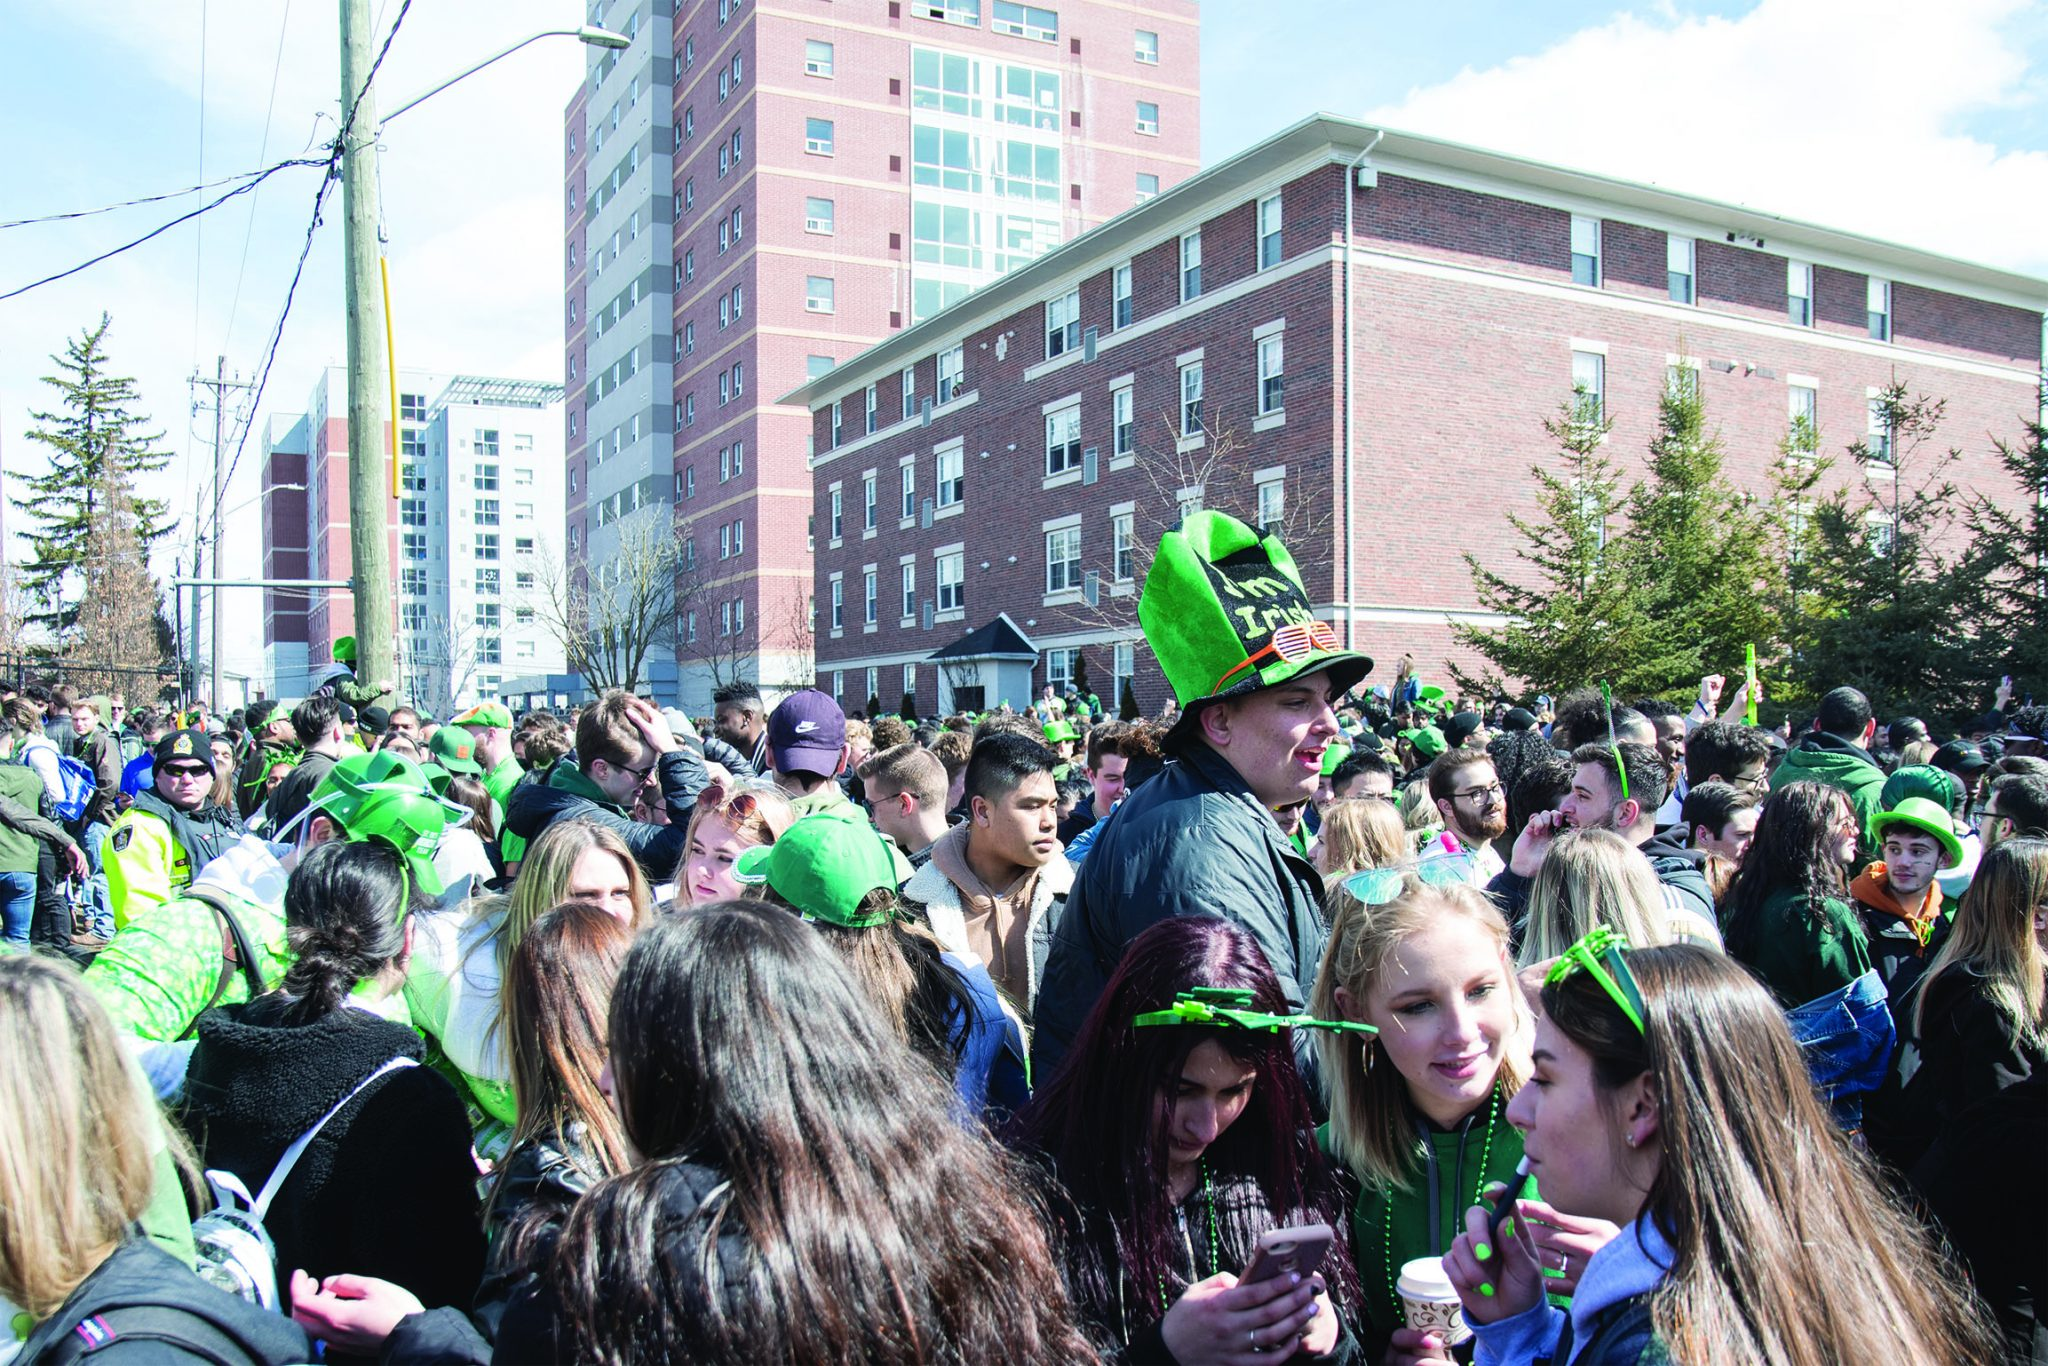 Crowd celebrates Saint Patrick's Day on Ezra street.